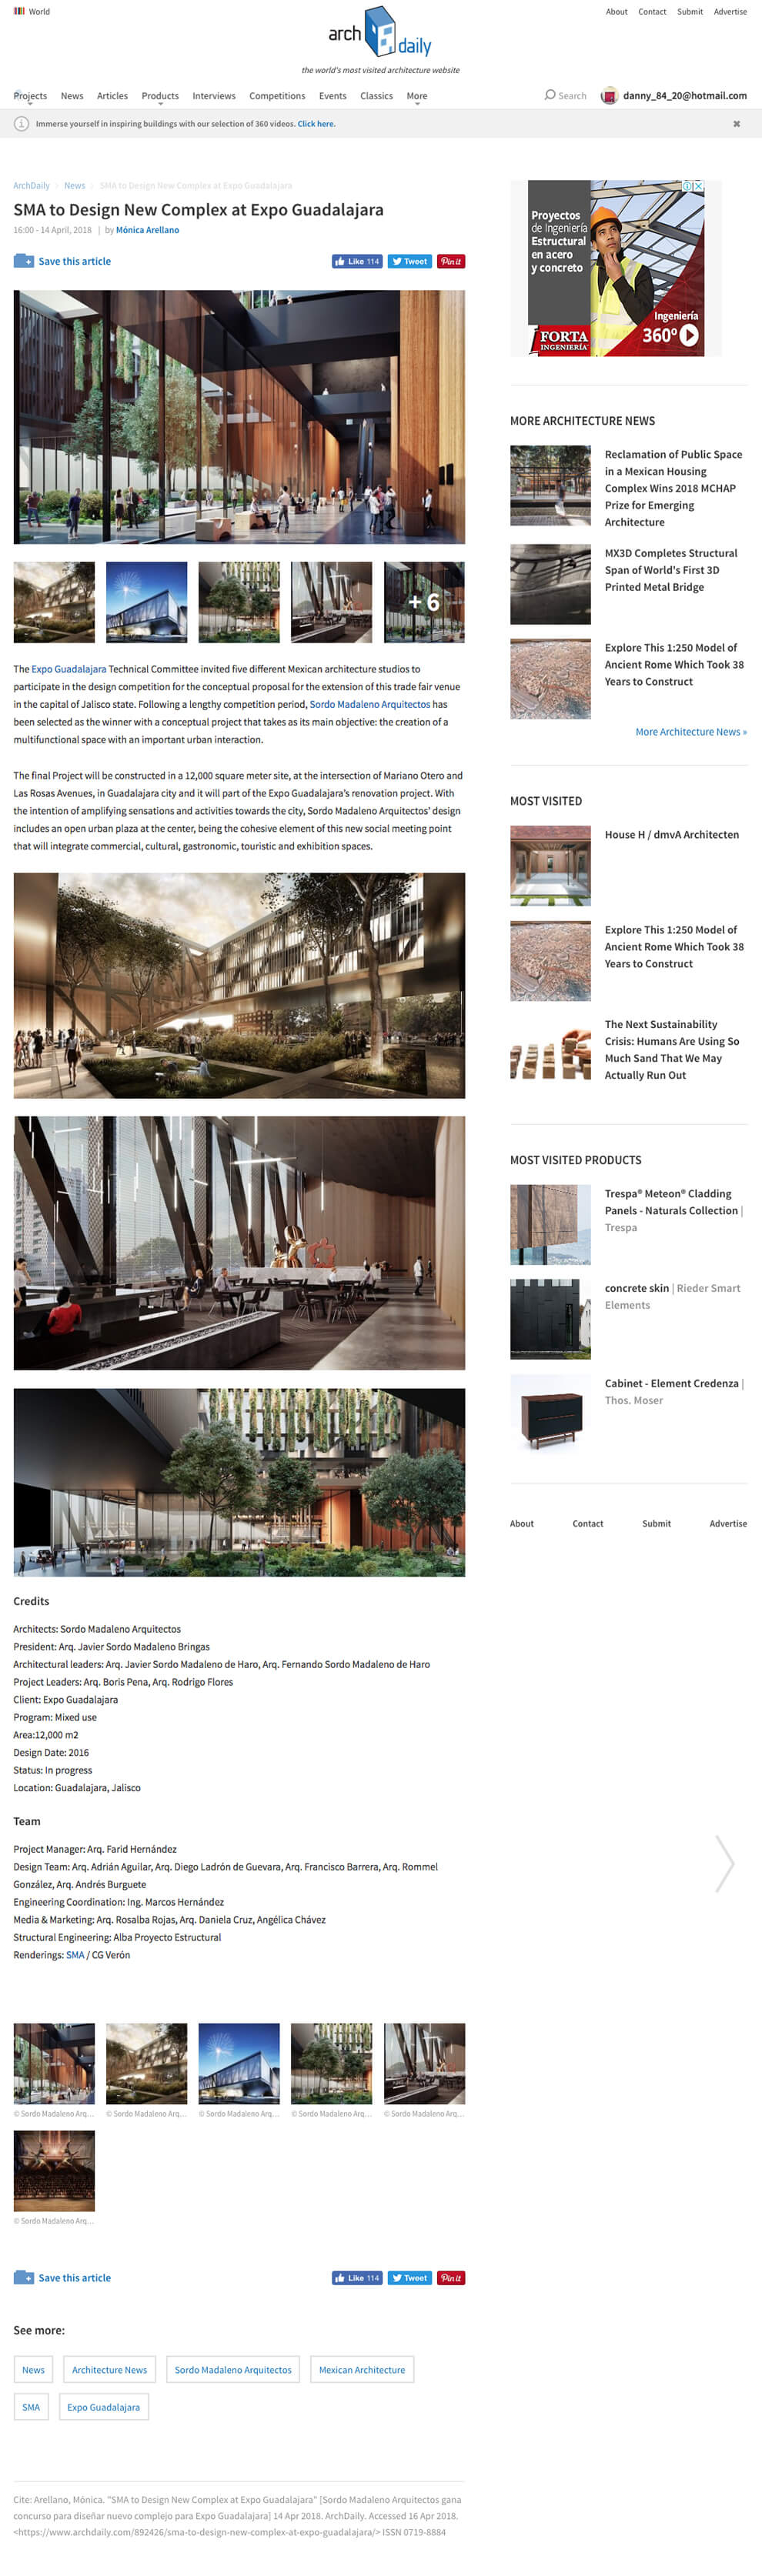 ArchDaily World